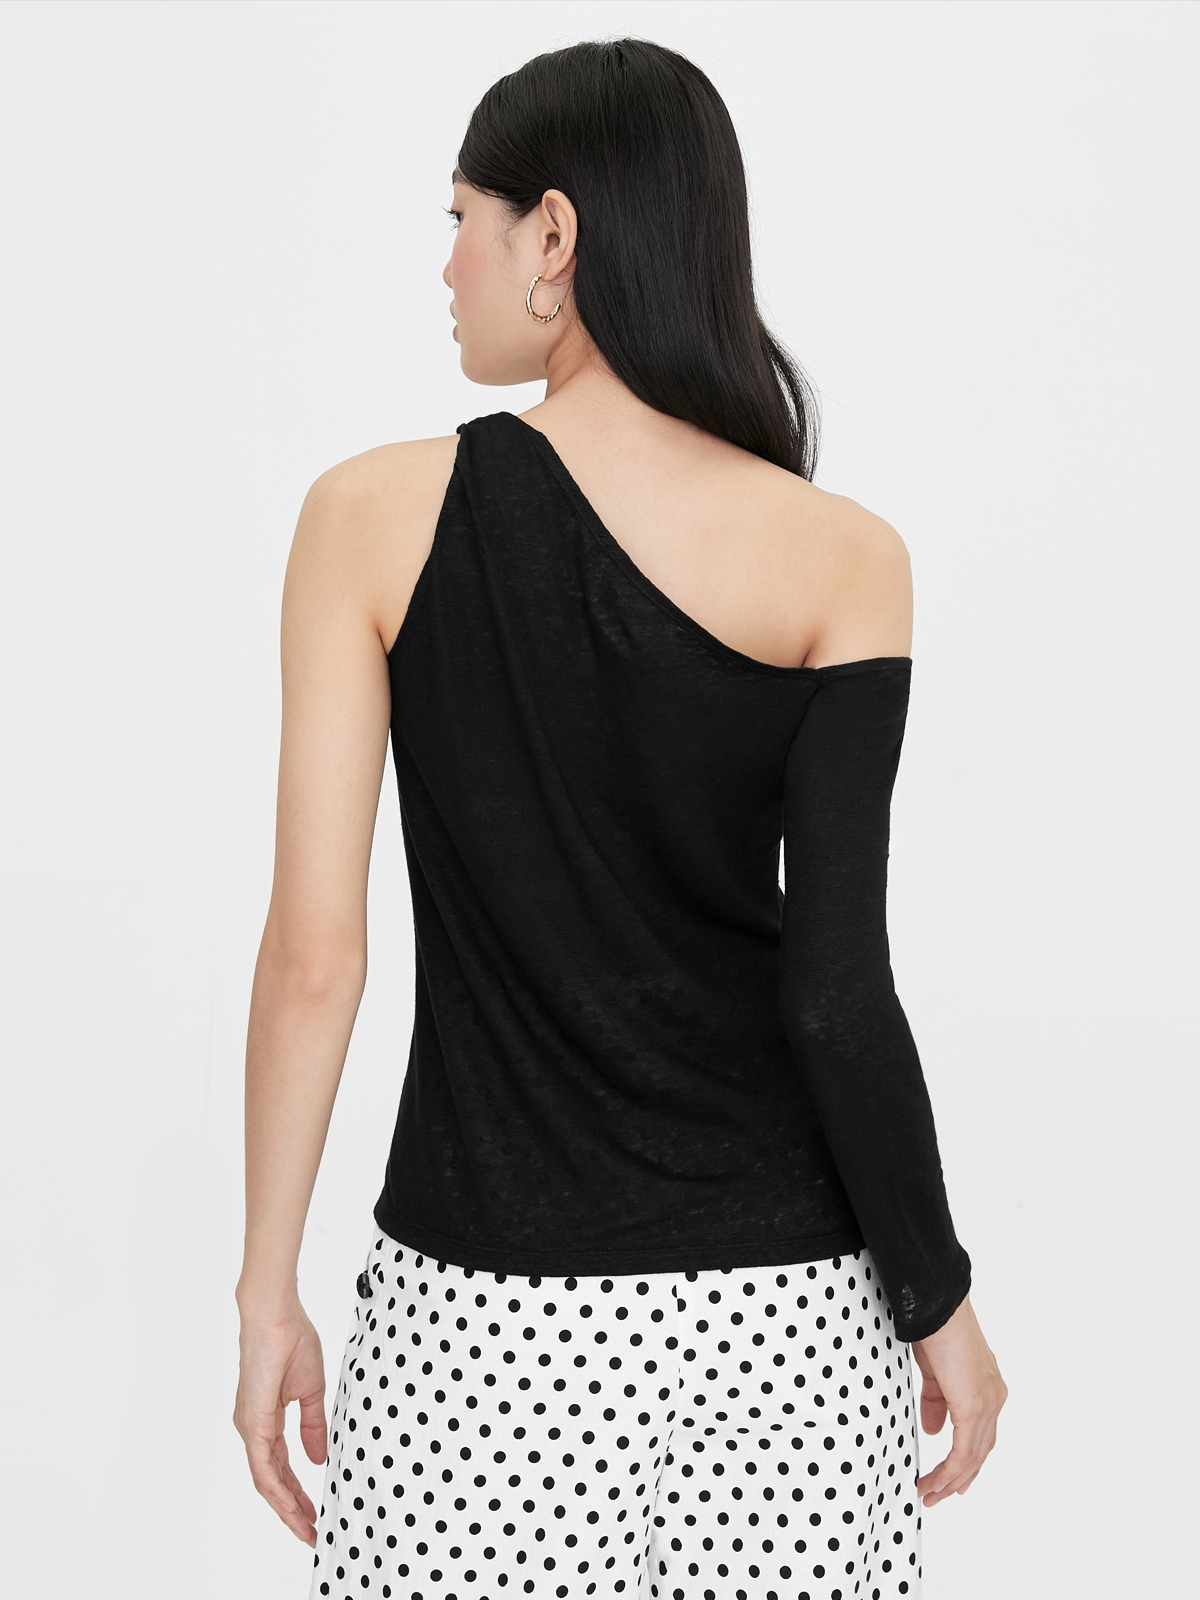 One Side Rolled Up Long Sleeve Top Black